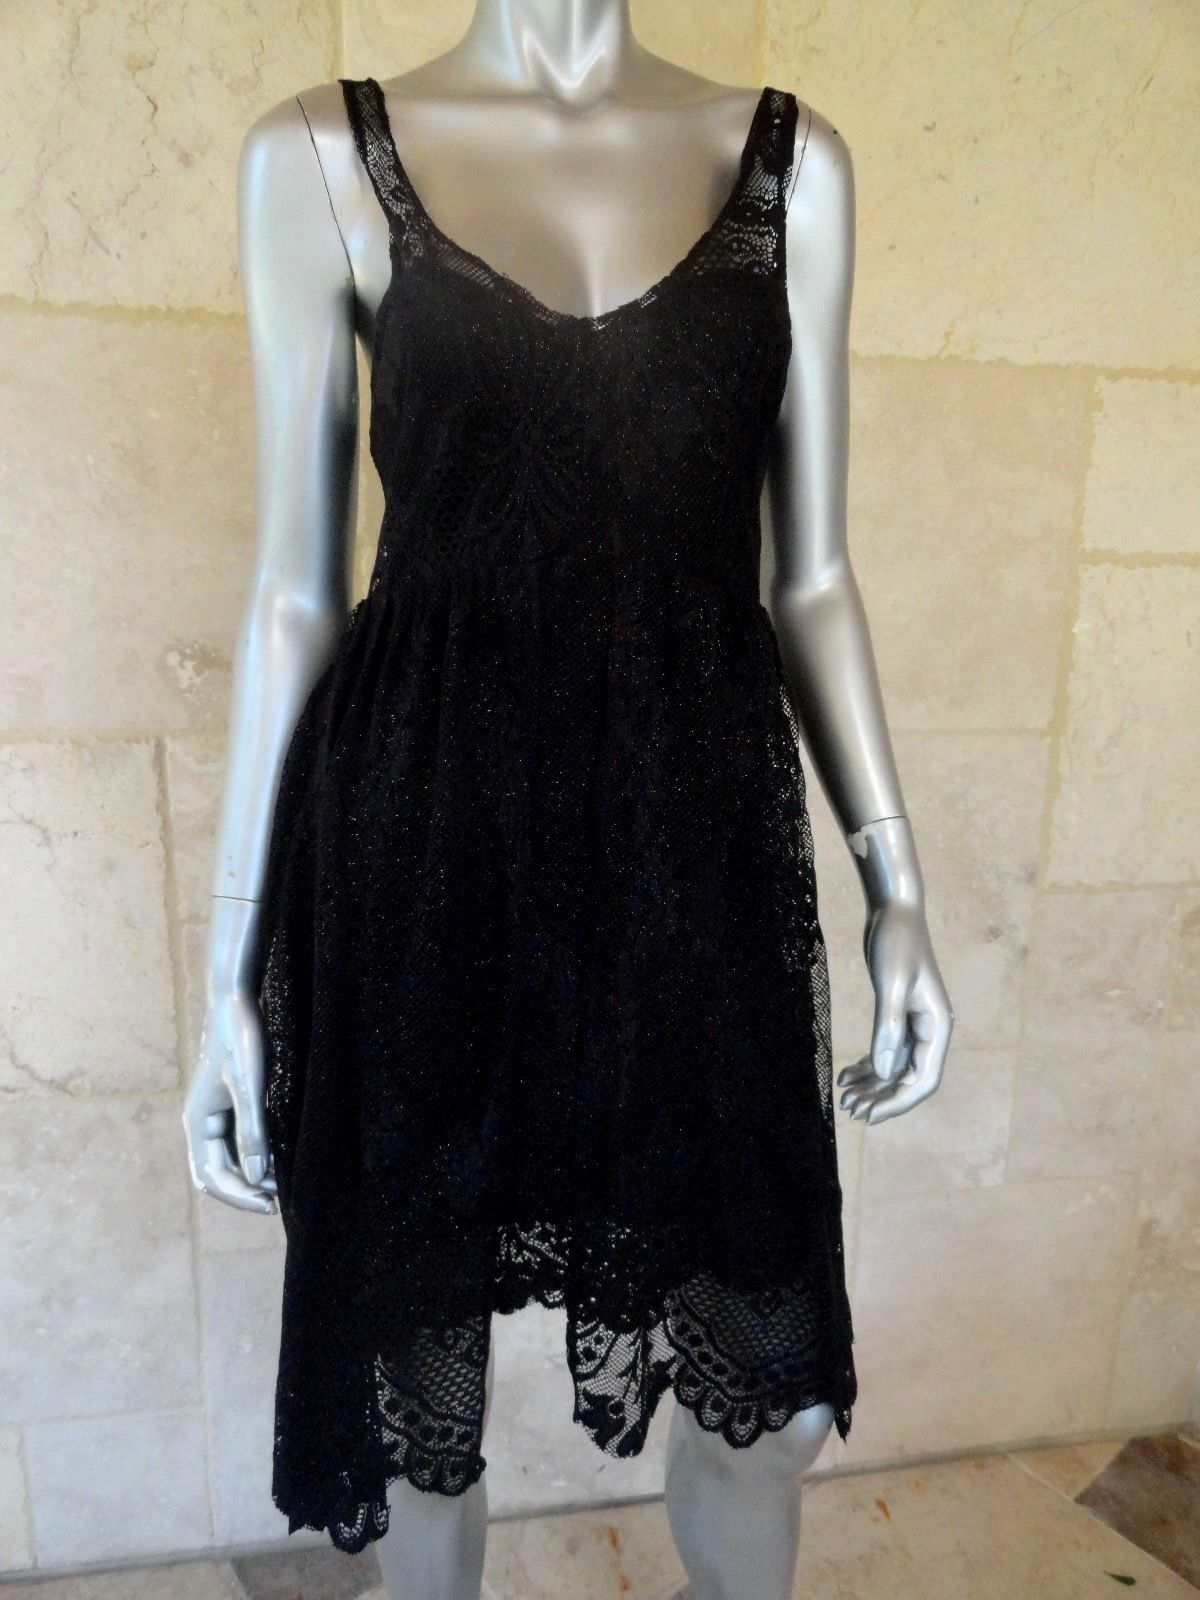 Free People schwarz Lace Sleeveless Hi Low Casual Summer Dress Sz 0 NWT